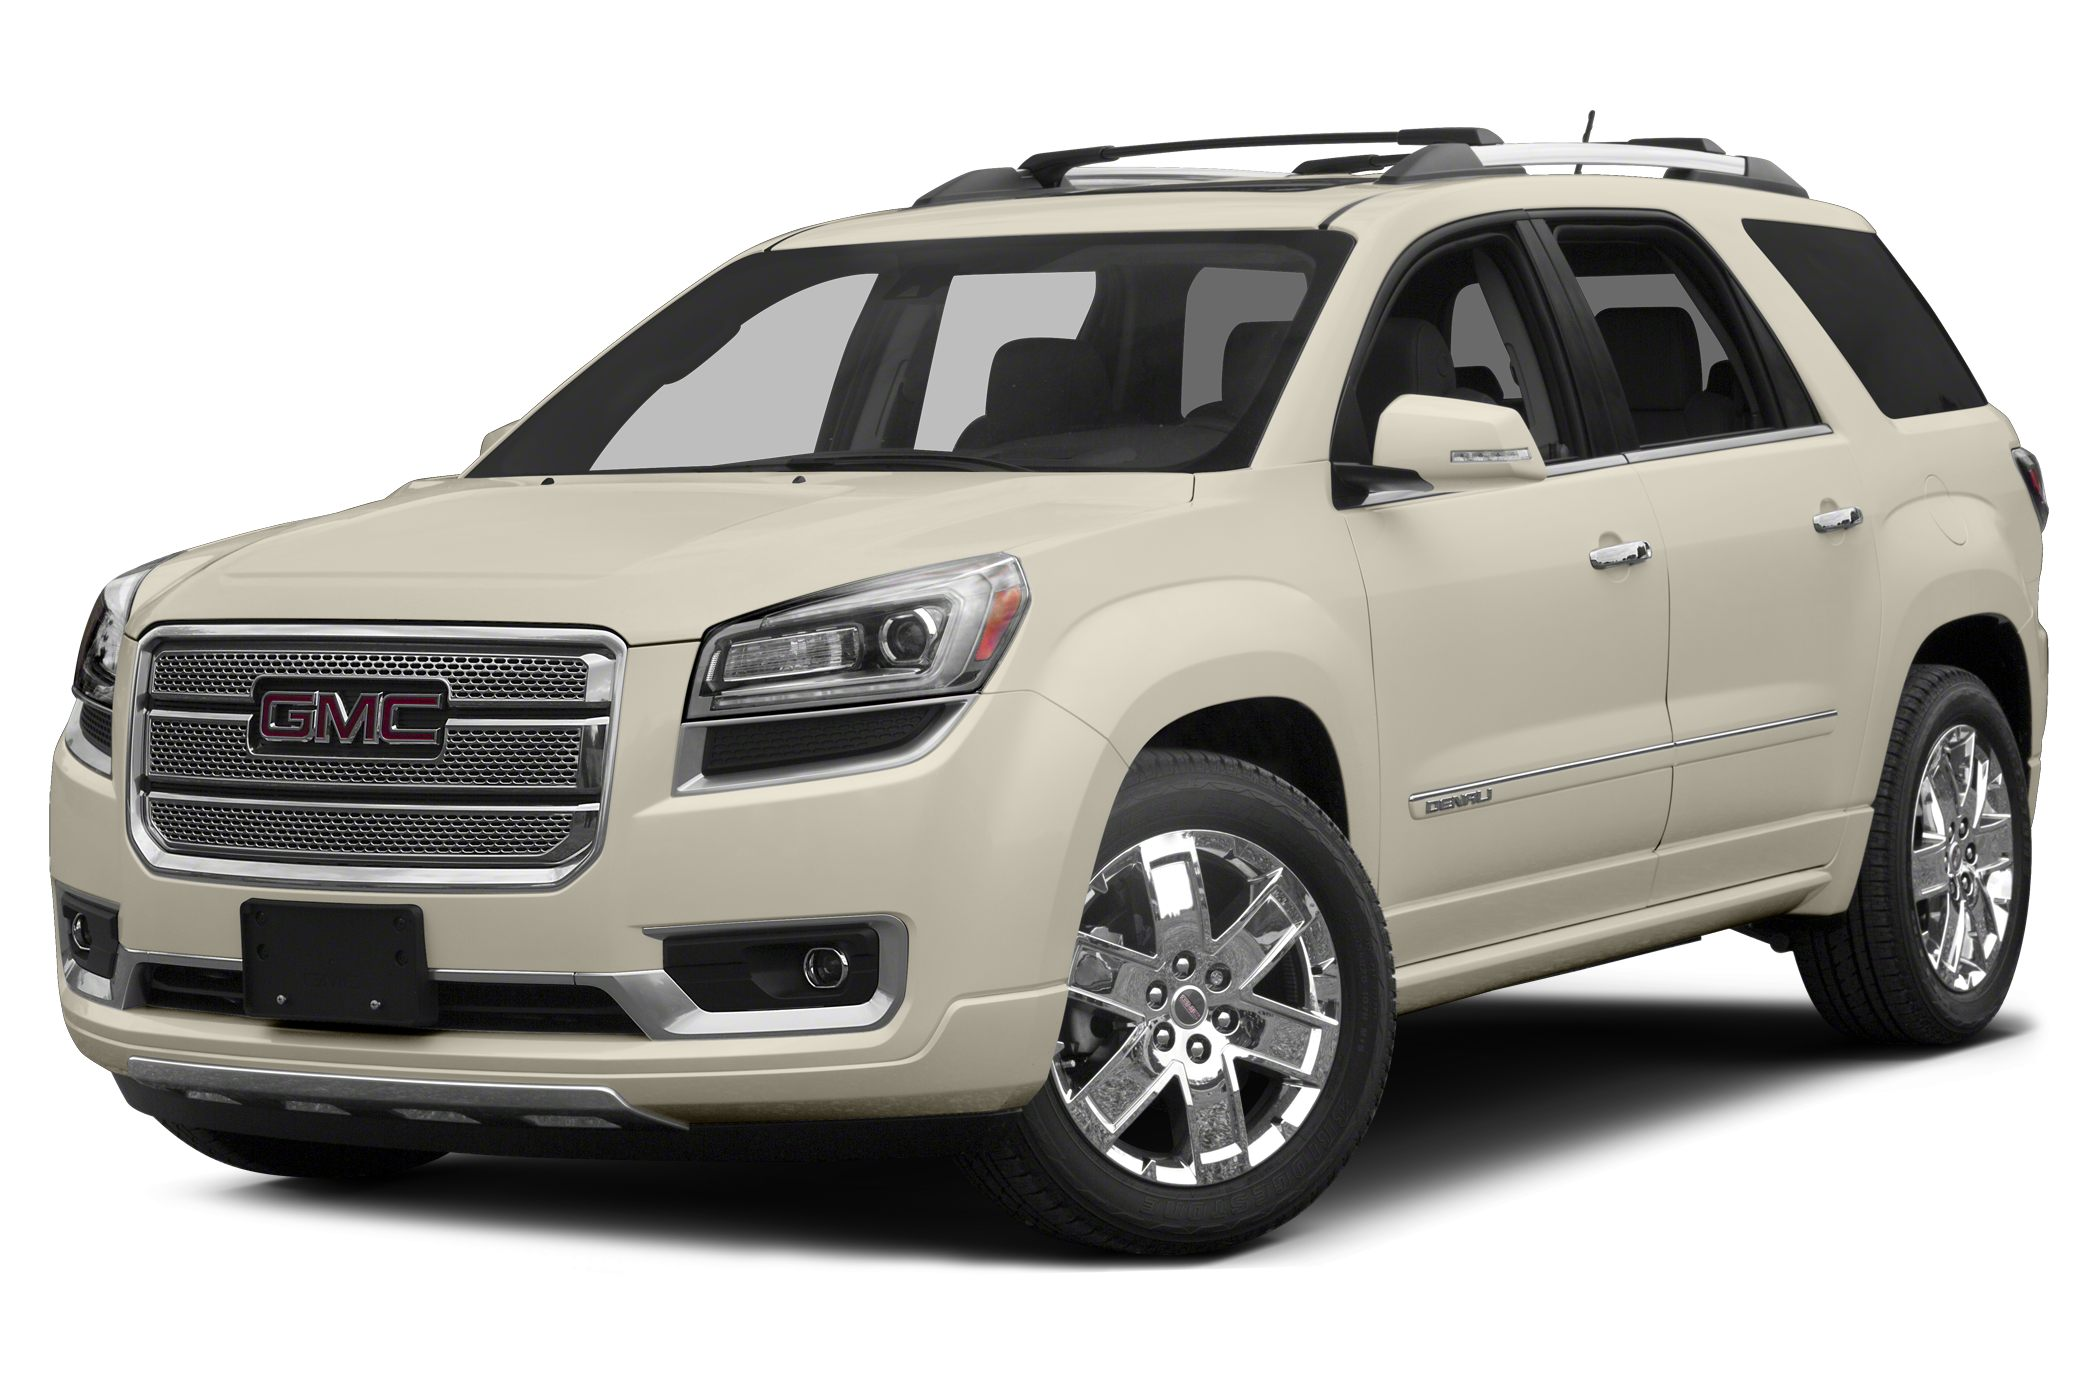 2015 GMC Acadia Denali SUV for sale in West Plains for $49,215 with 0 miles.